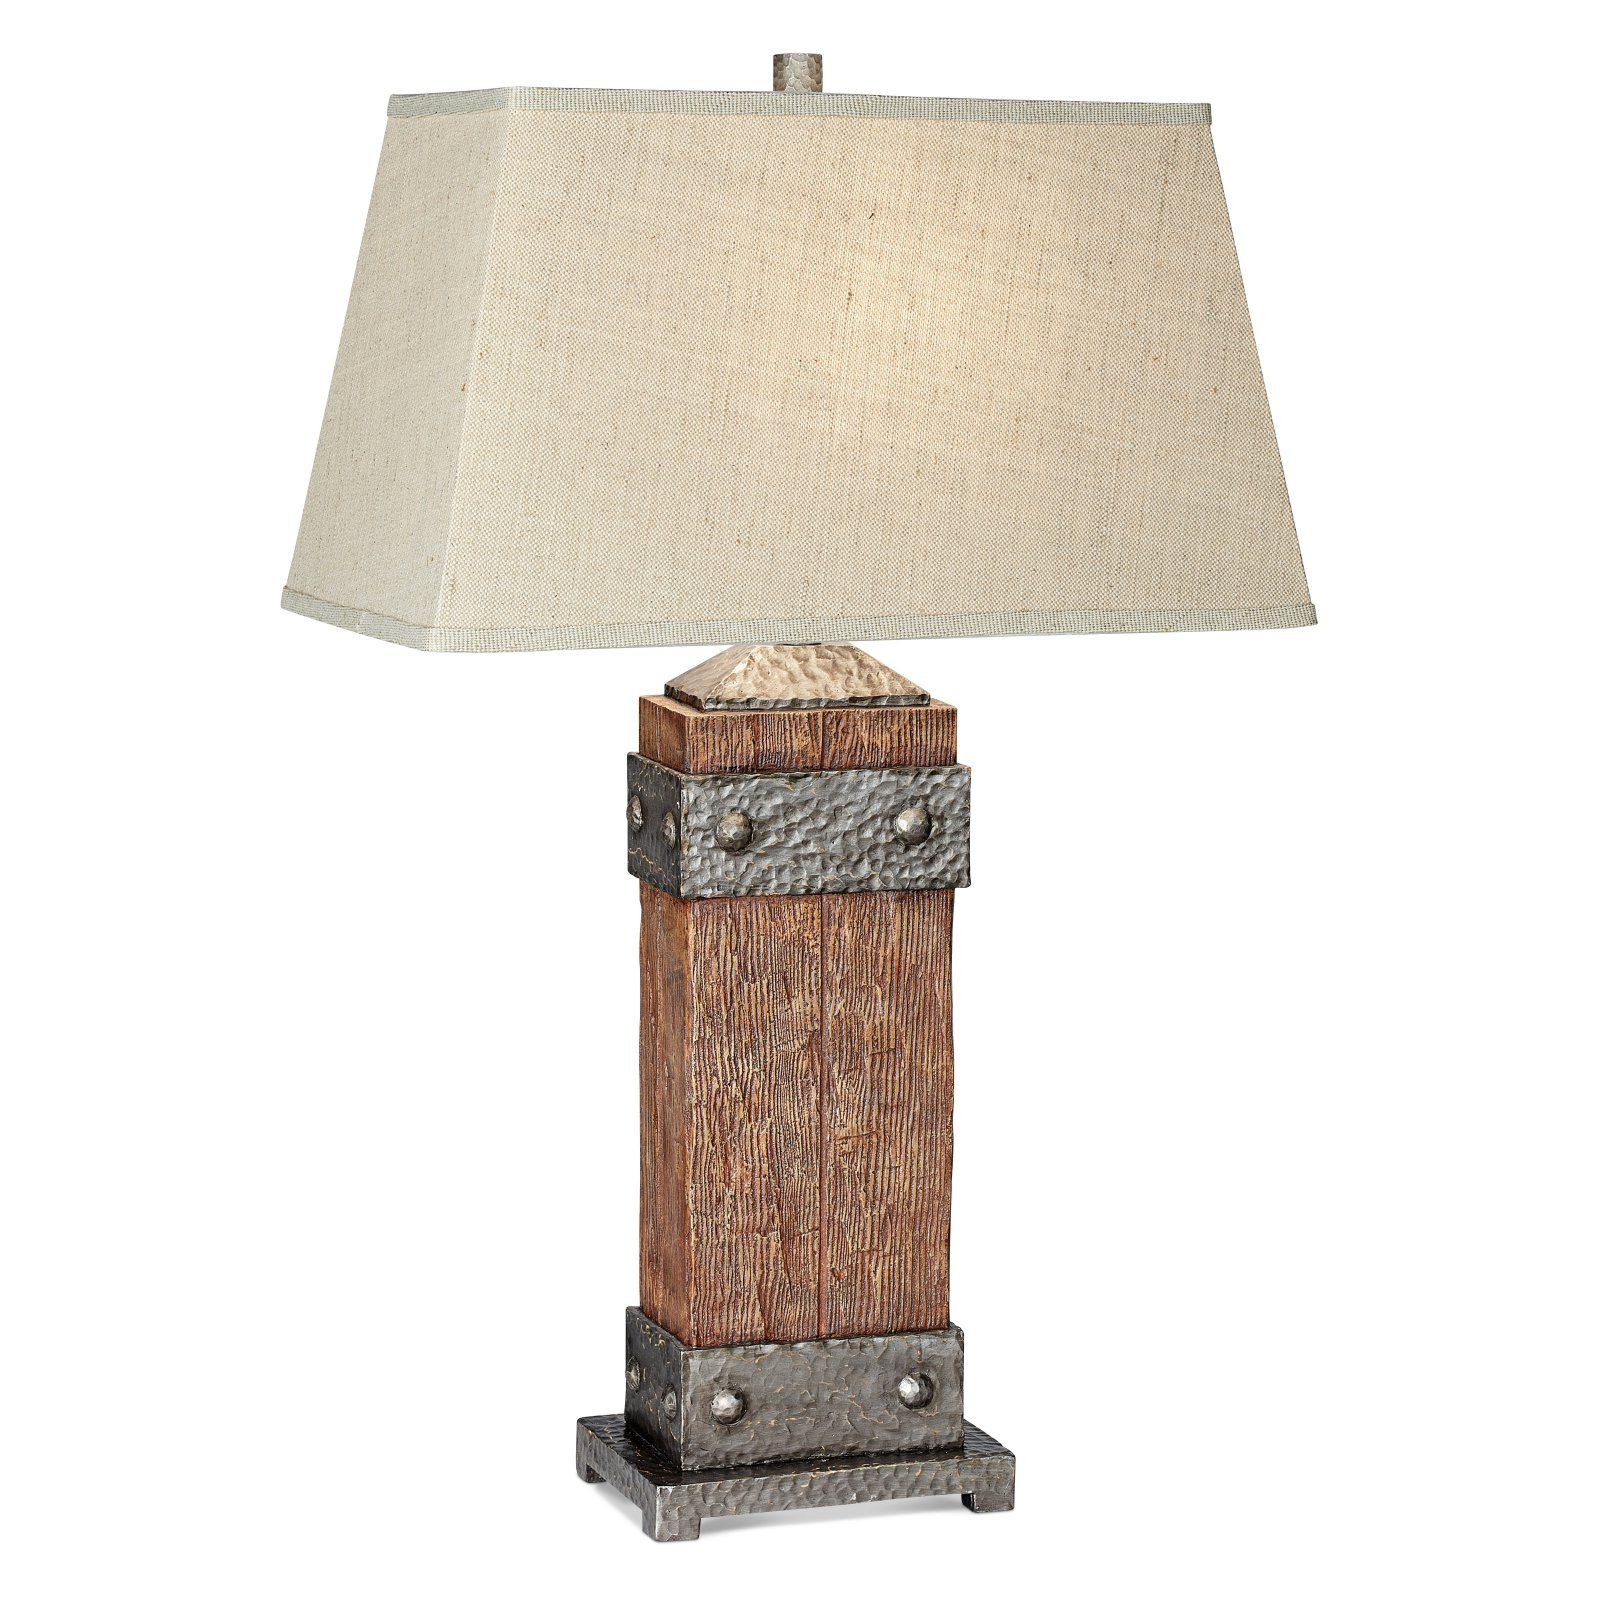 Pacific Coast Lighting Rockledge Table Lamp Lamp Table